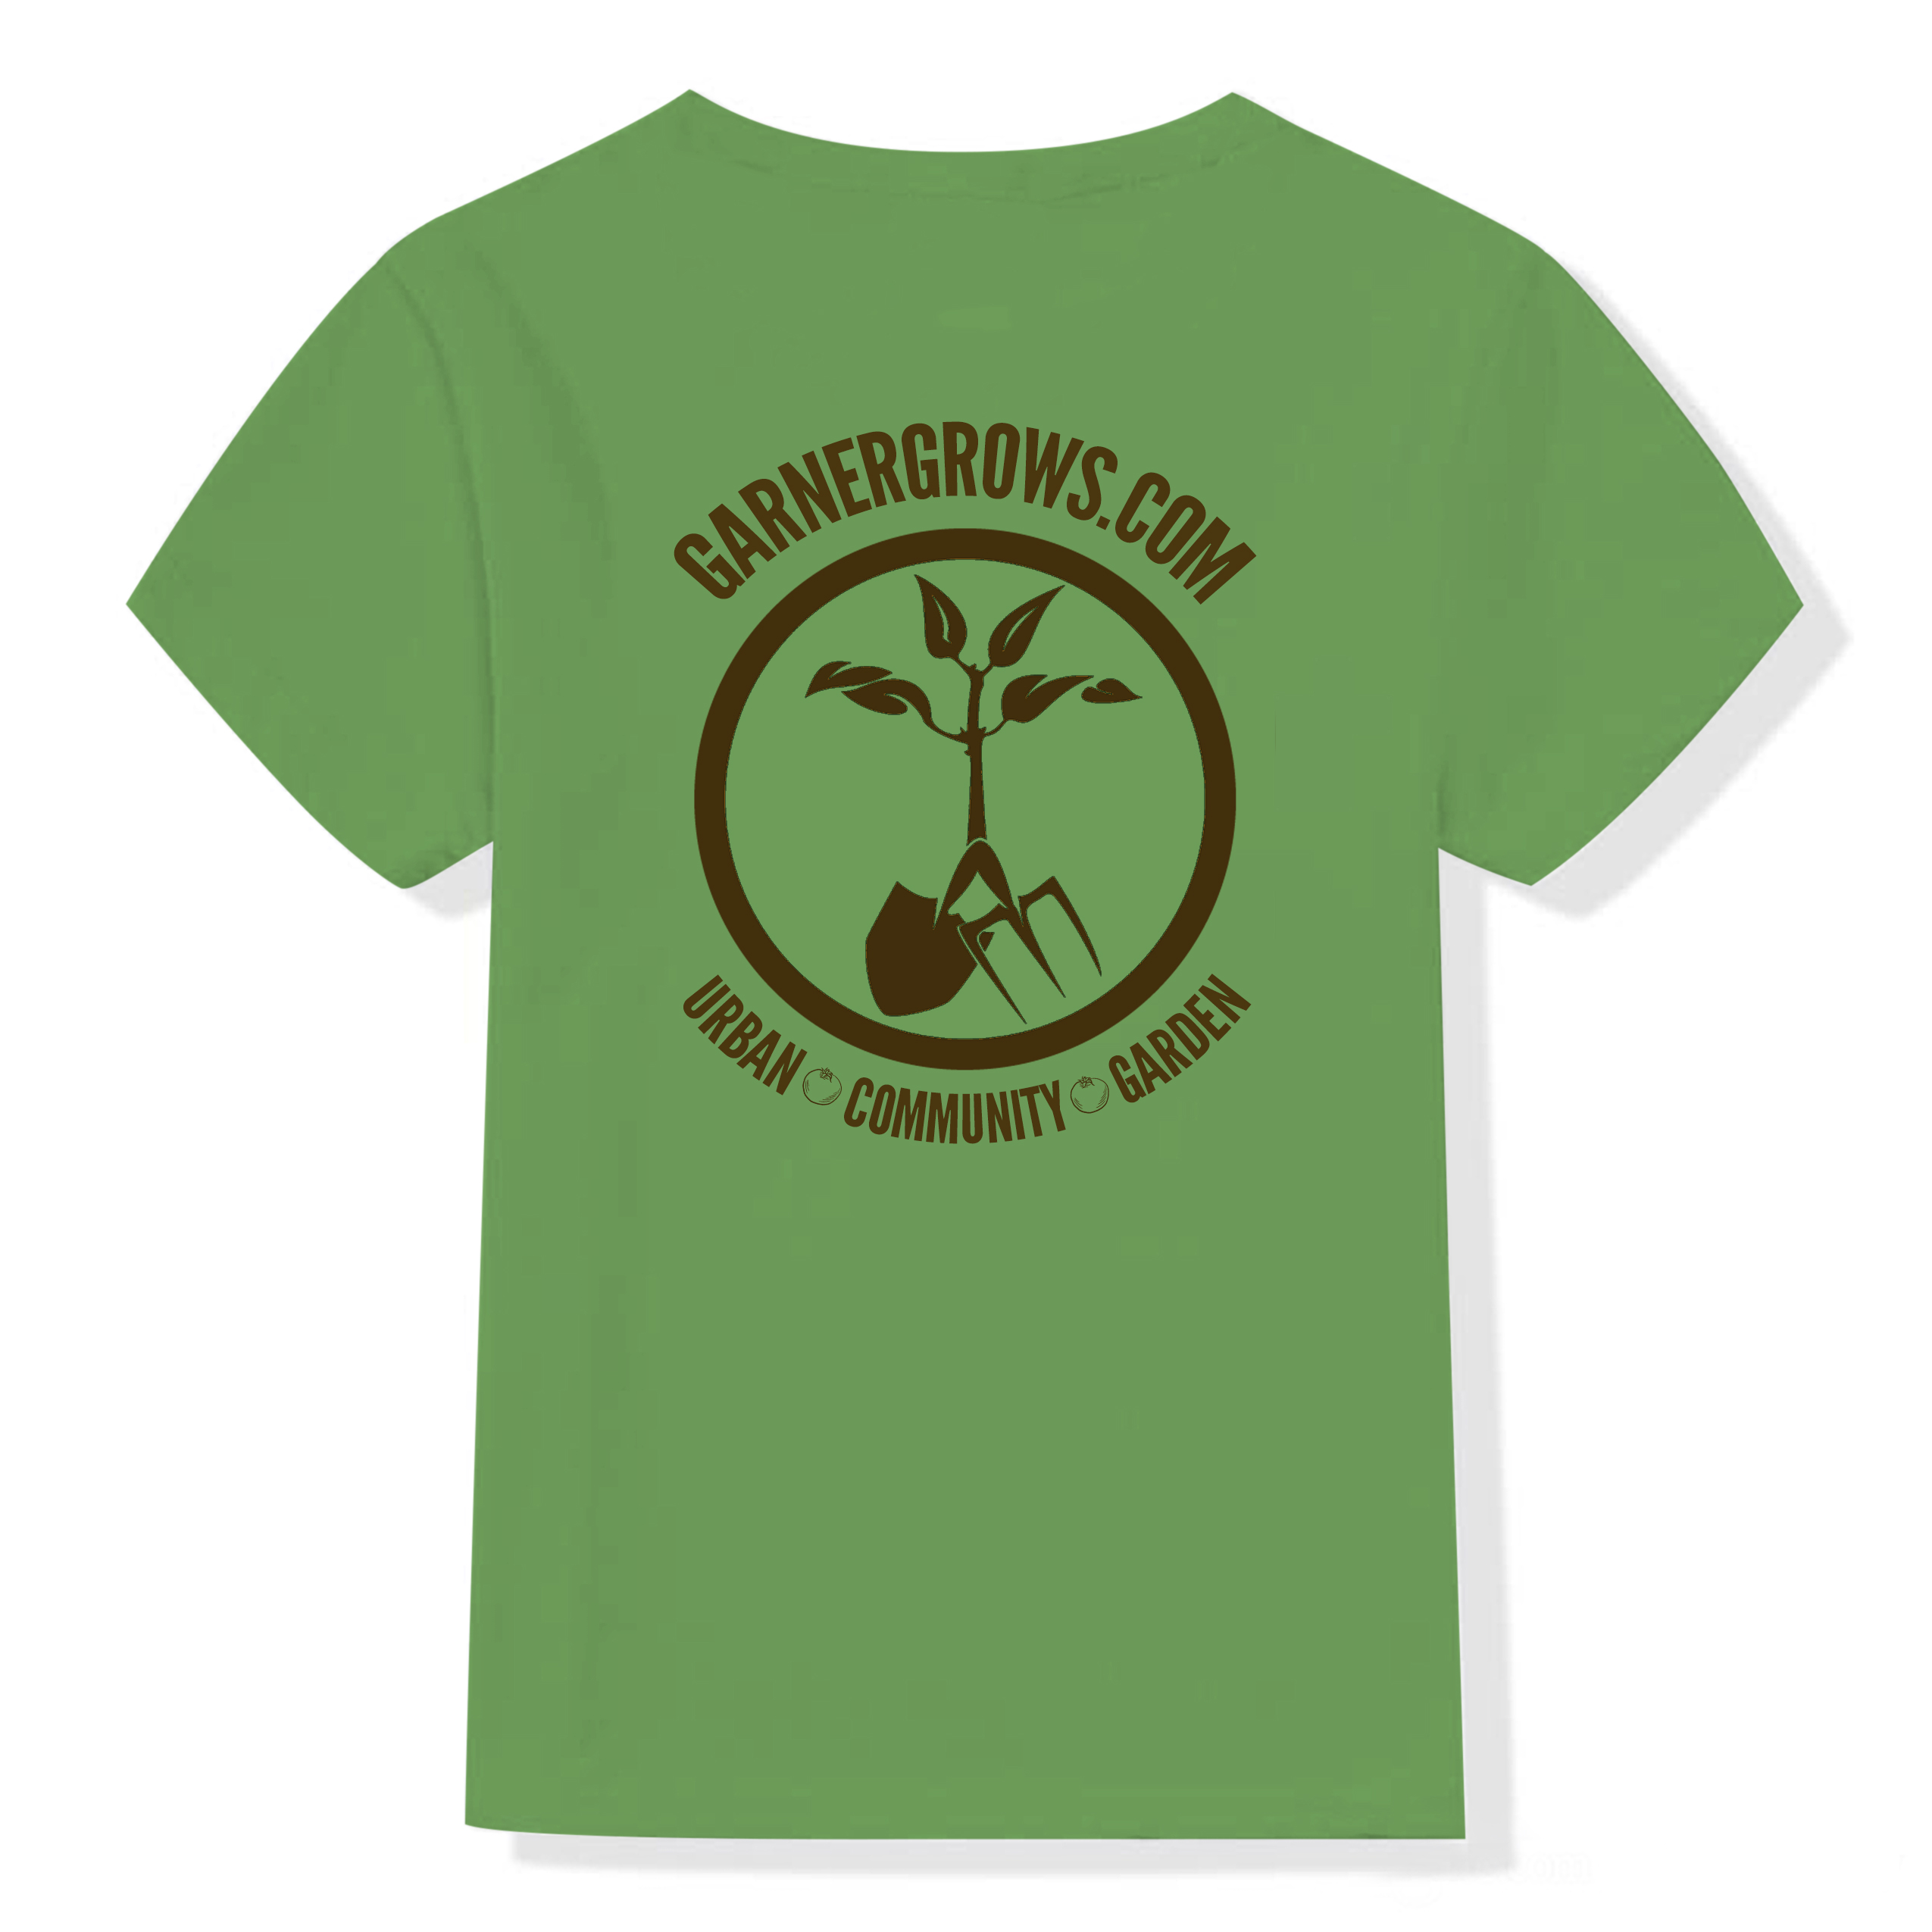 Garner grows green tee shirt the logo image and caption Urban Community Garden